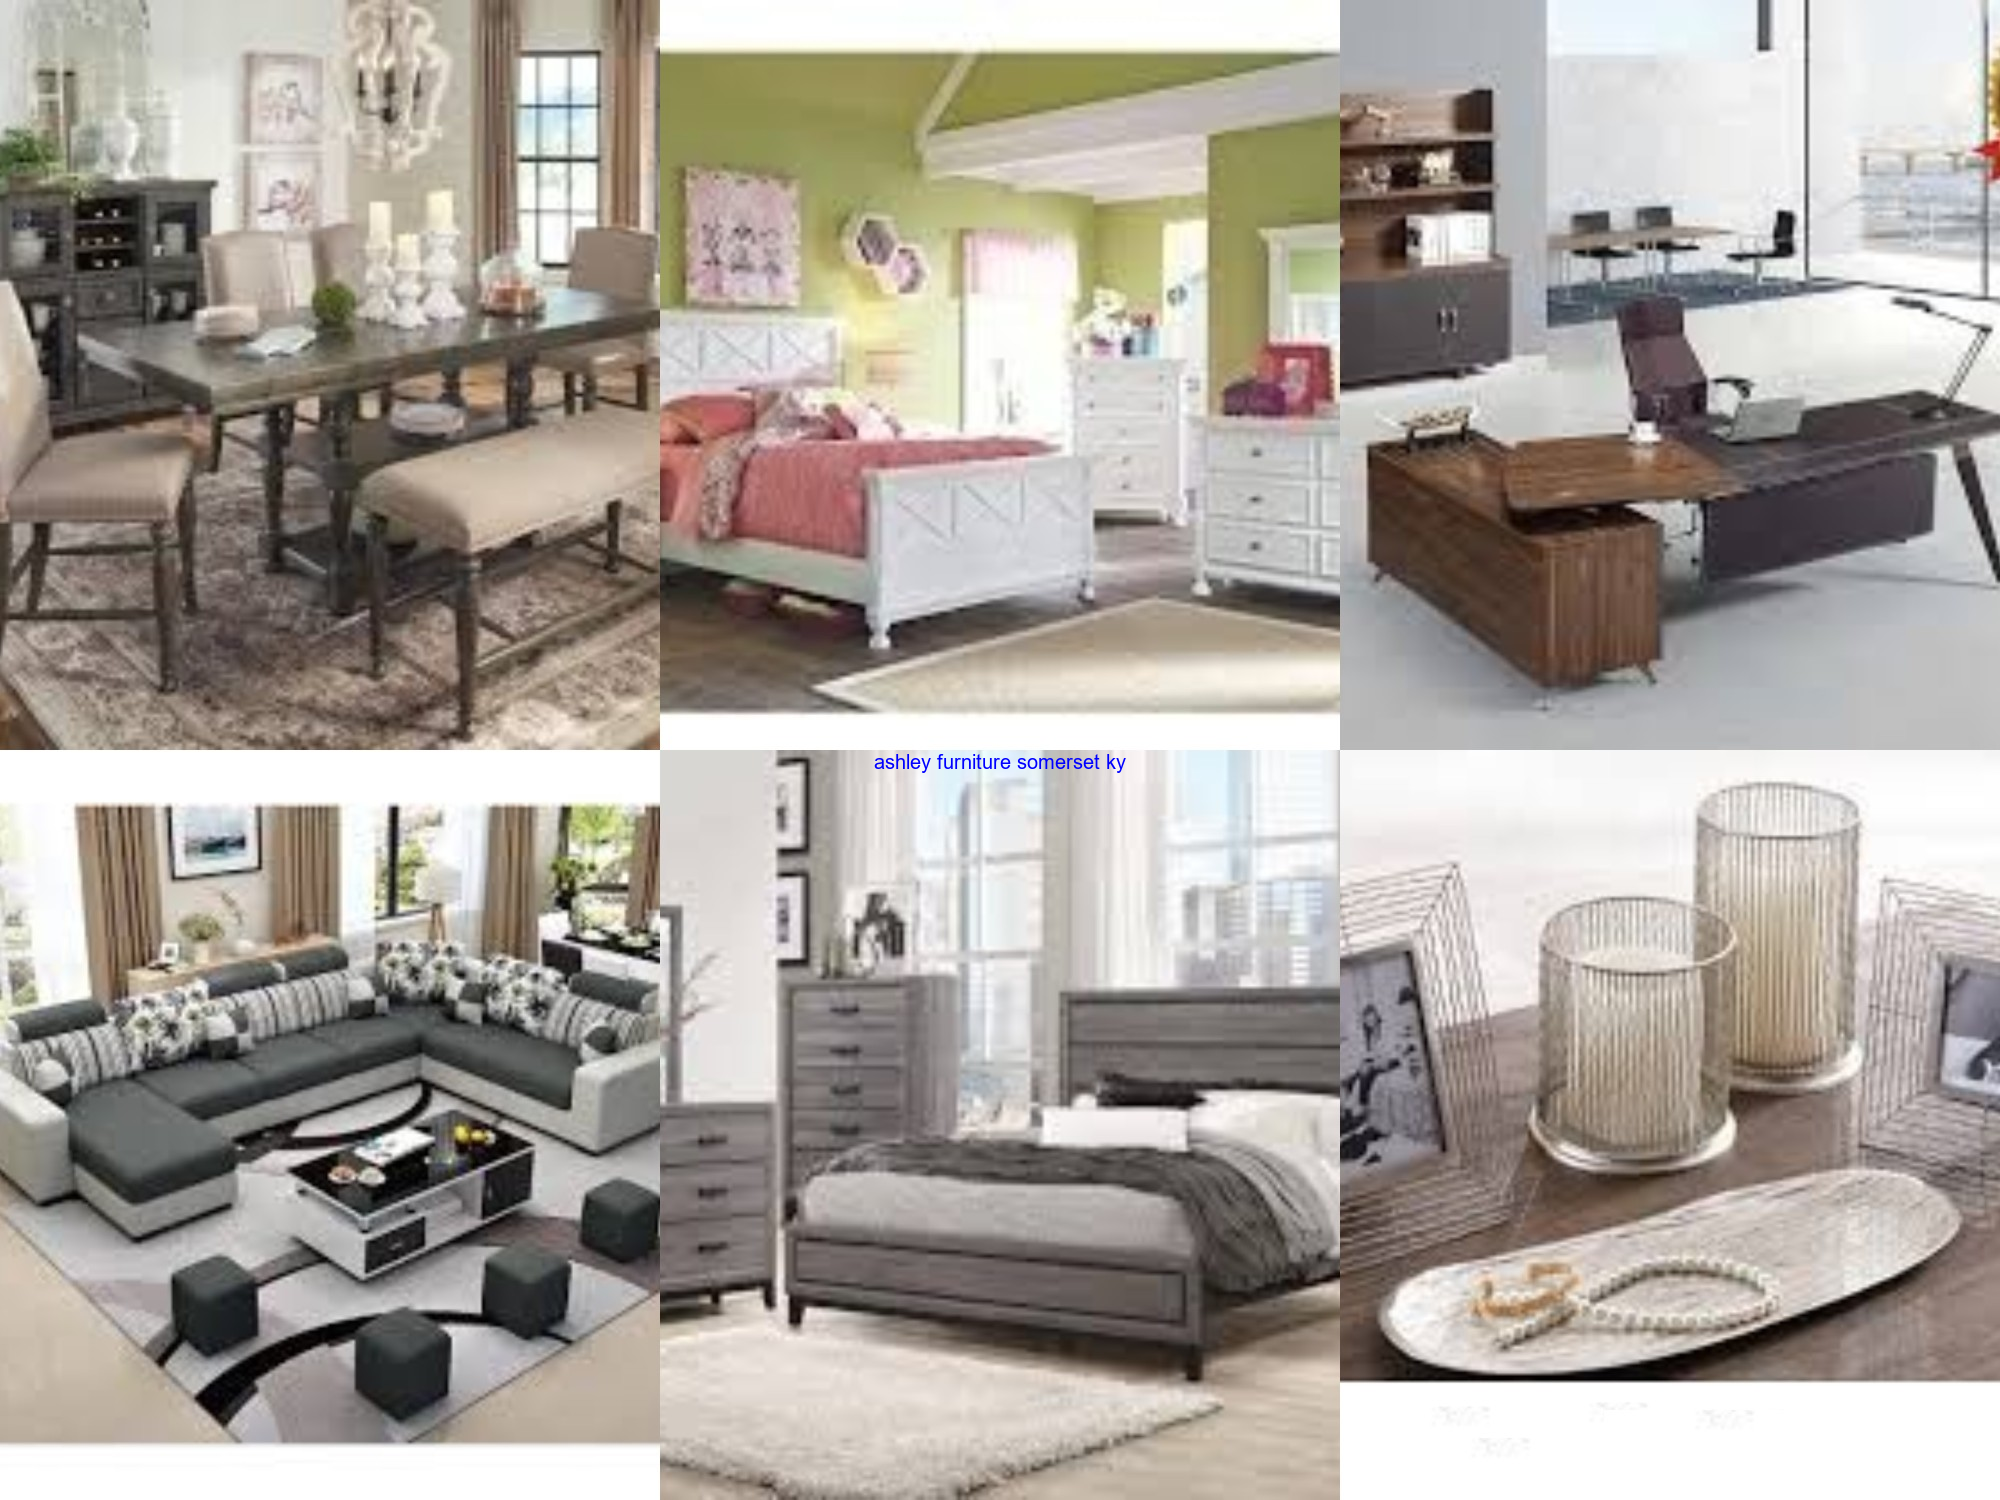 Ashley Furniture Somerset Ky - I Suggest You To Try This Web intended for Ashley Furniture Somerset Ky